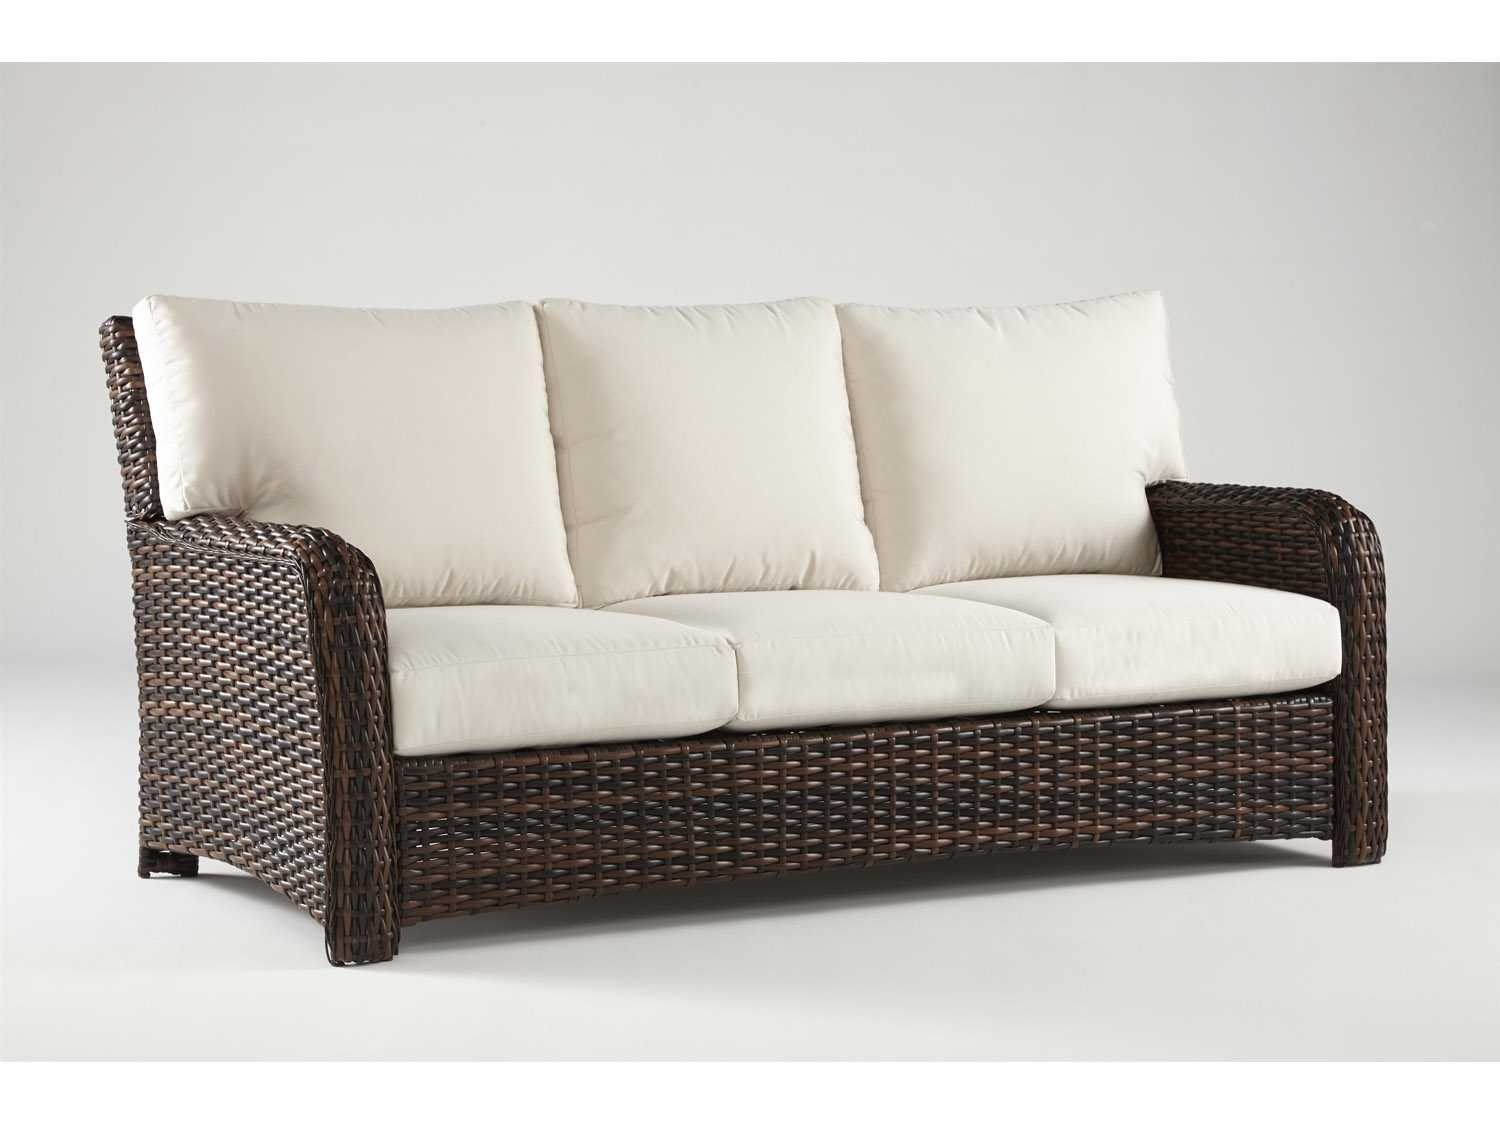 Sofa Rattan South Sea Rattan St Tropez Wicker Cushion Sofa